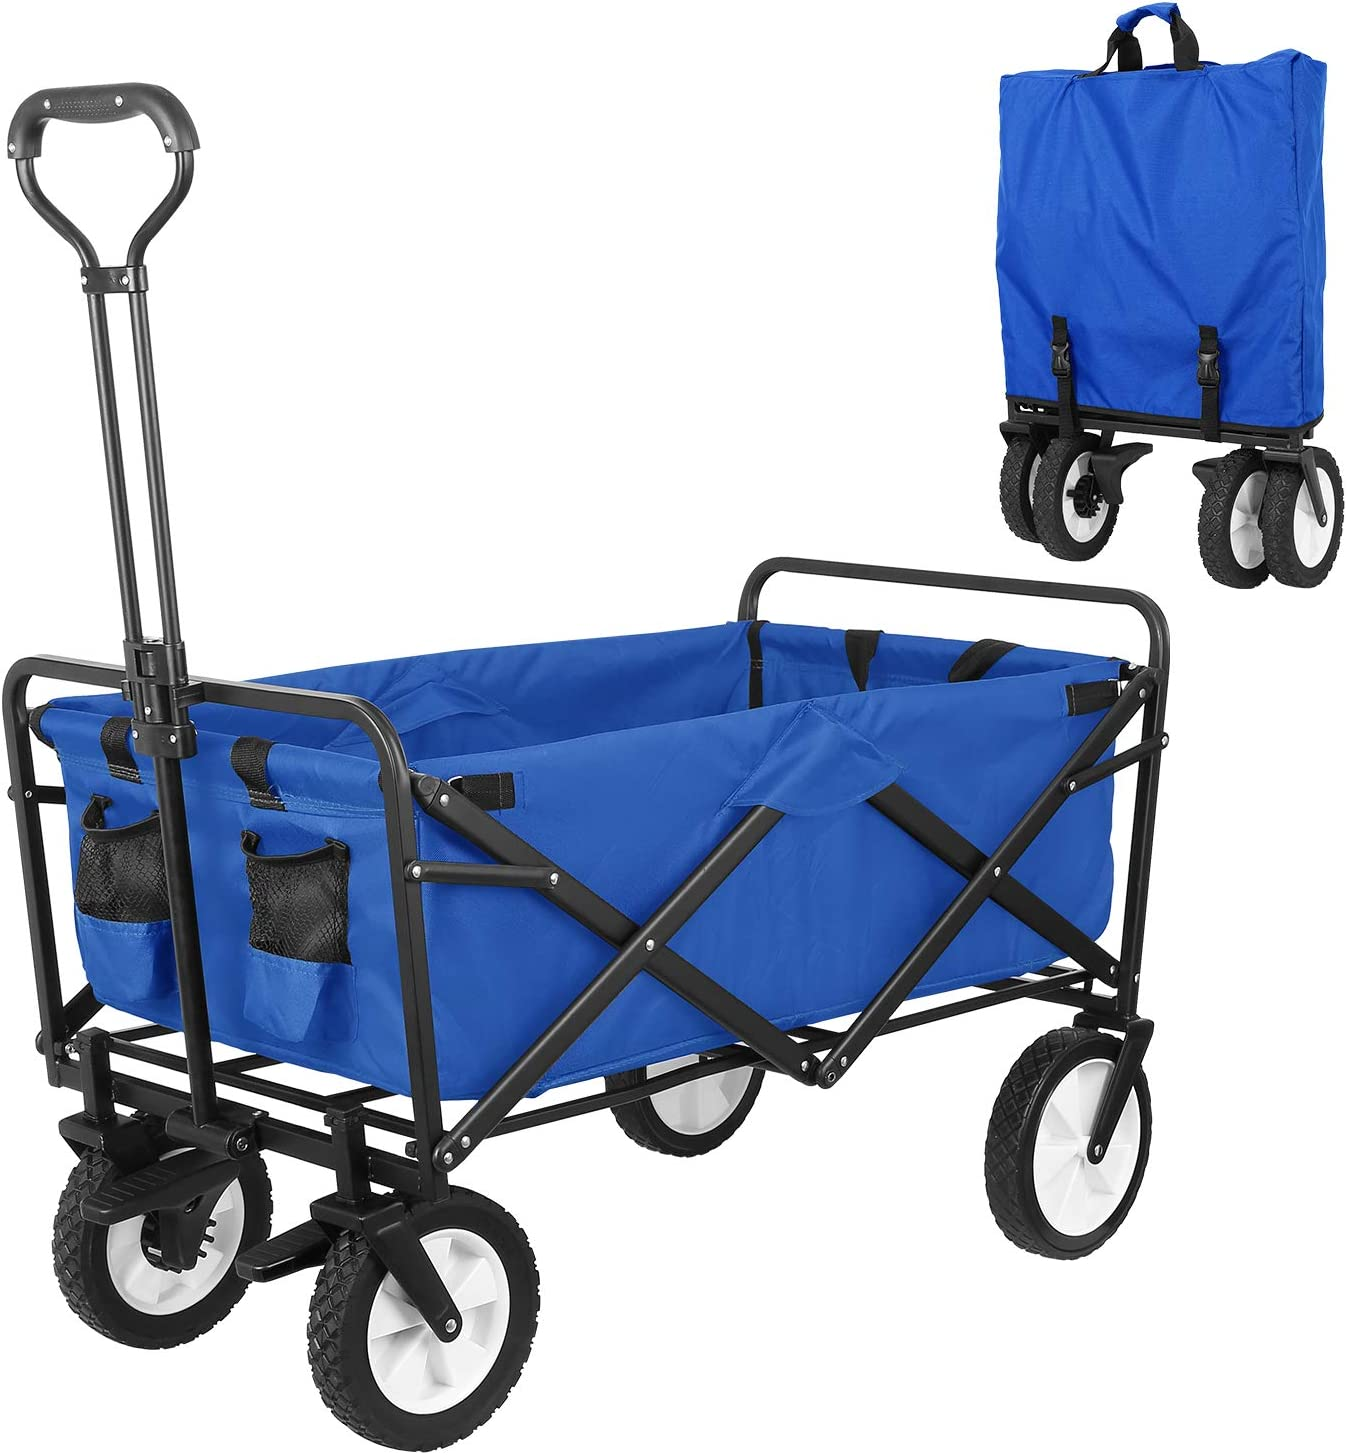 HEMBOR Popularity Collapsible Outdoor Utility Wagon Heavy Folding Max 66% OFF Gar Duty